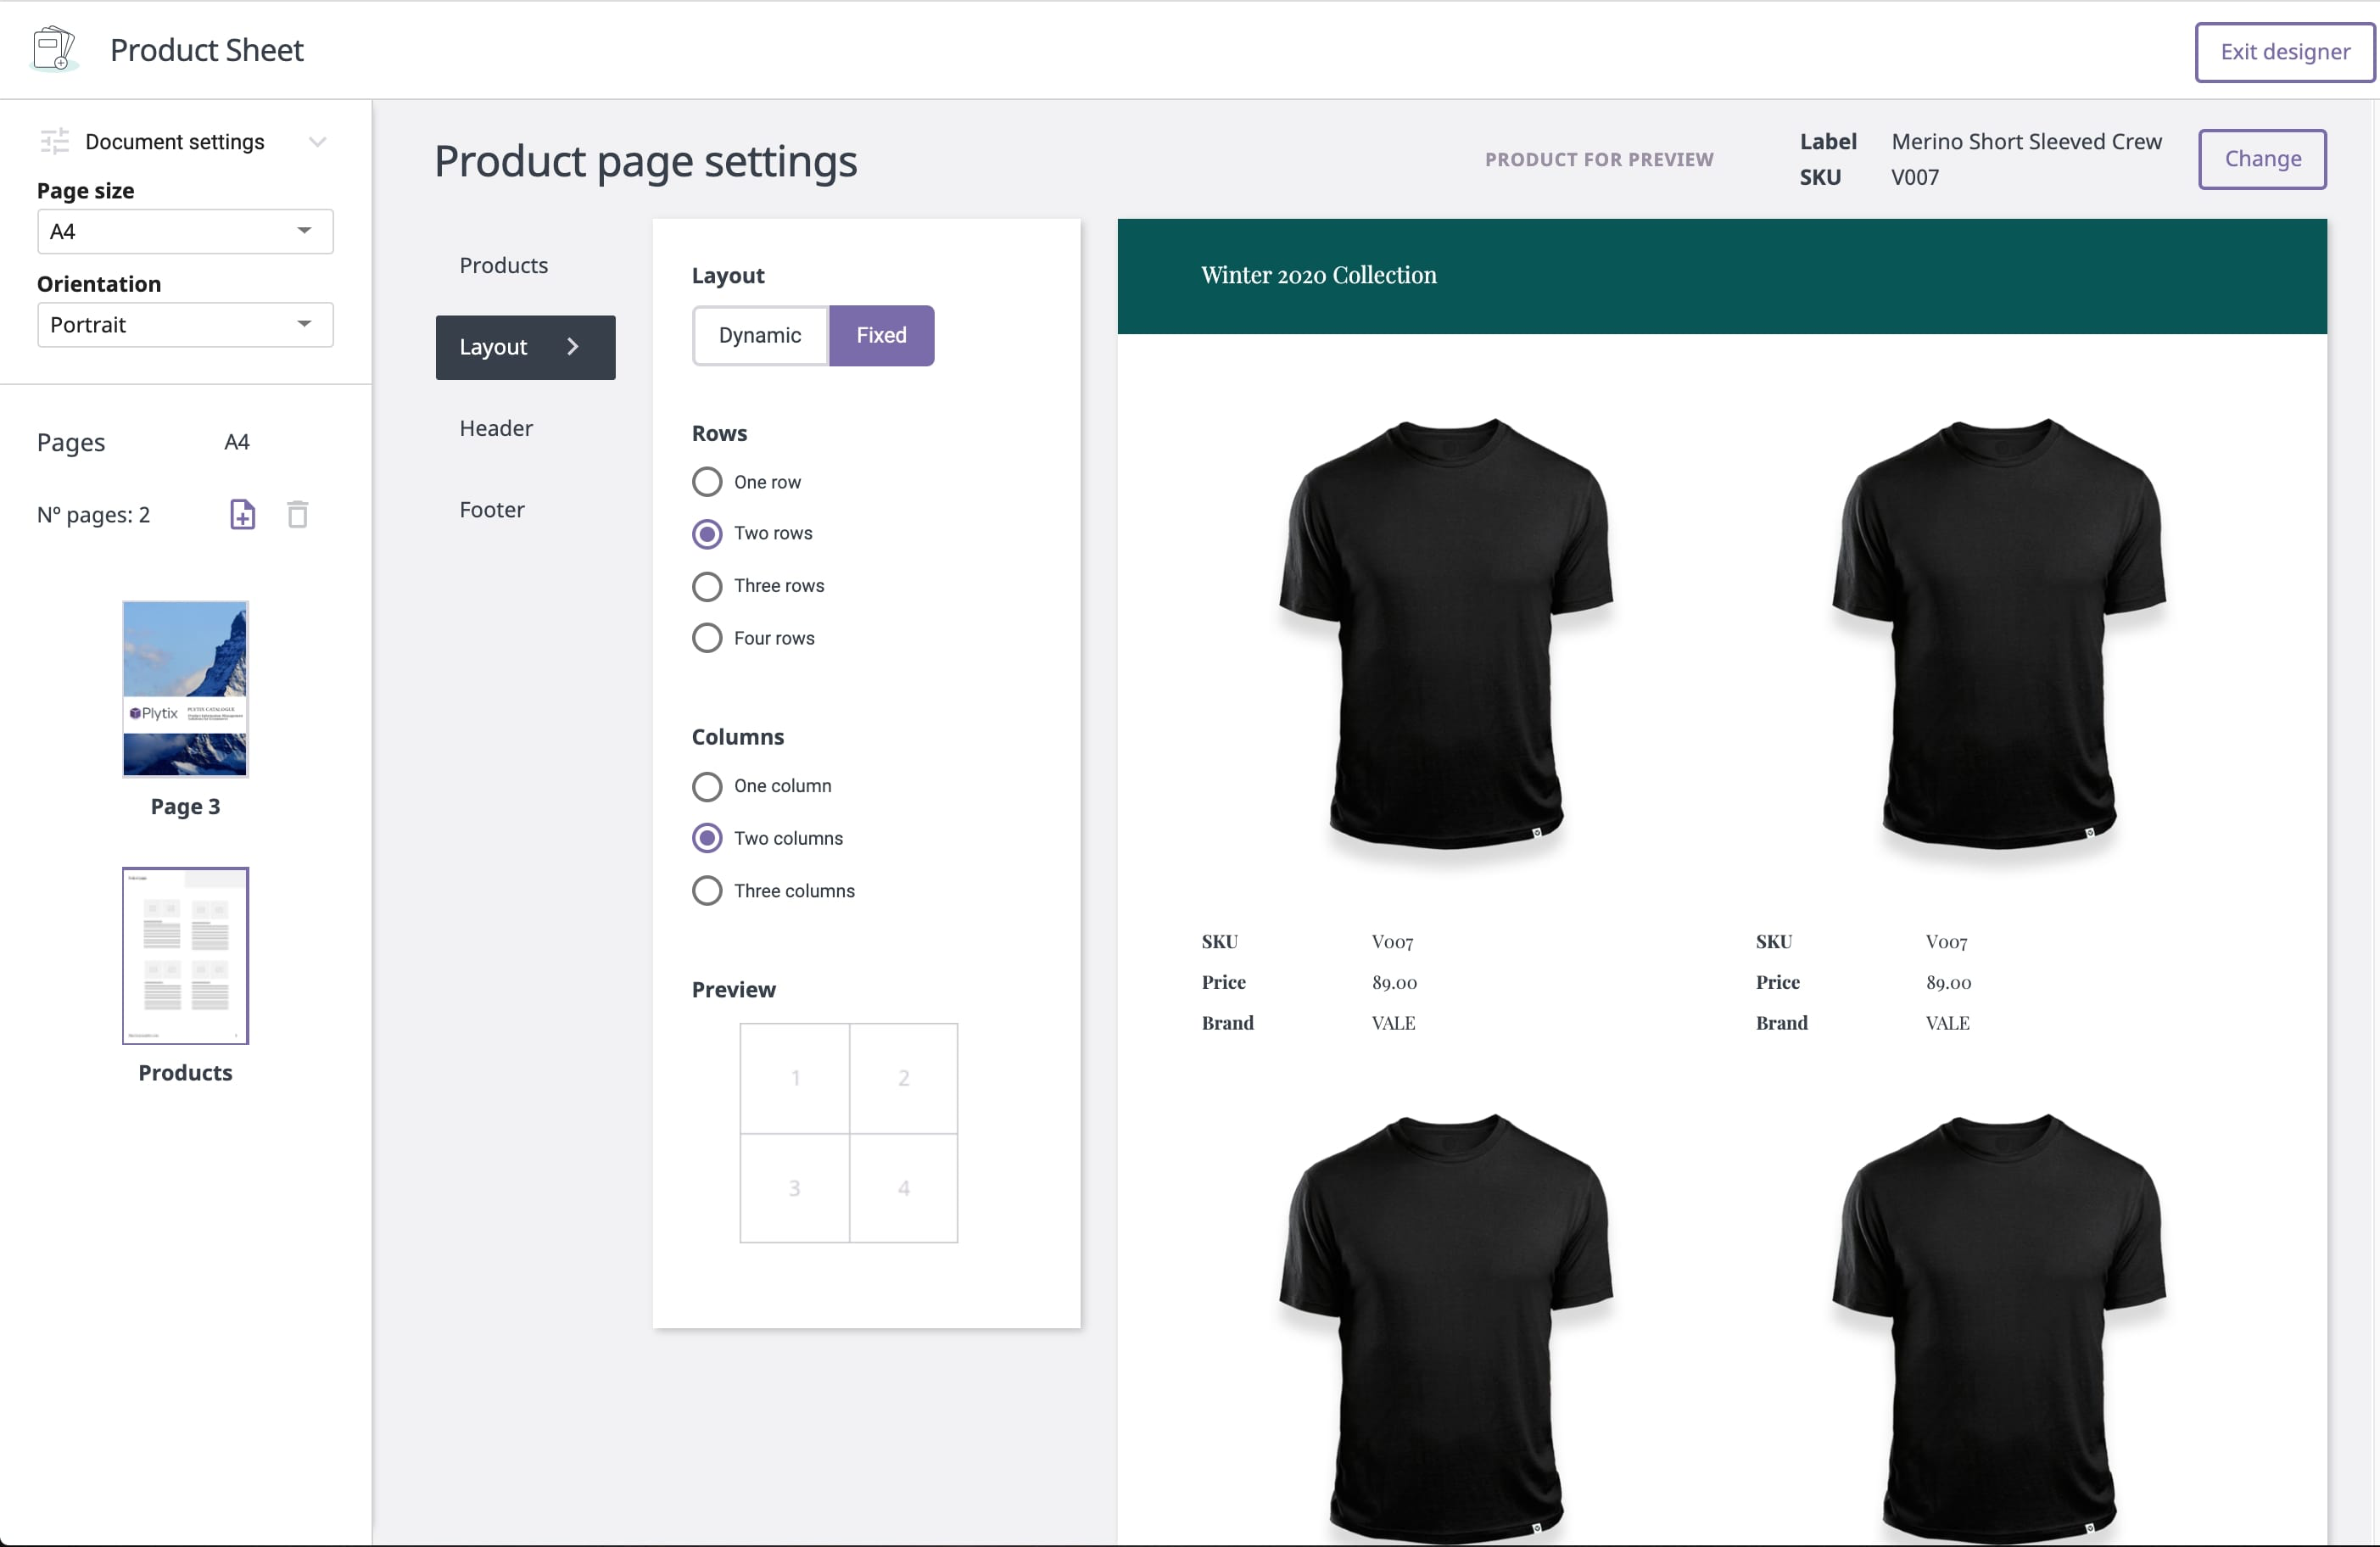 Gone are the days of relying on advanced graphic design skills and expensive inDesign integrations to produce a catalog. Within minutes you can create sexy Product Sheets that help communicate your brand, latest product collections, specifications & more.